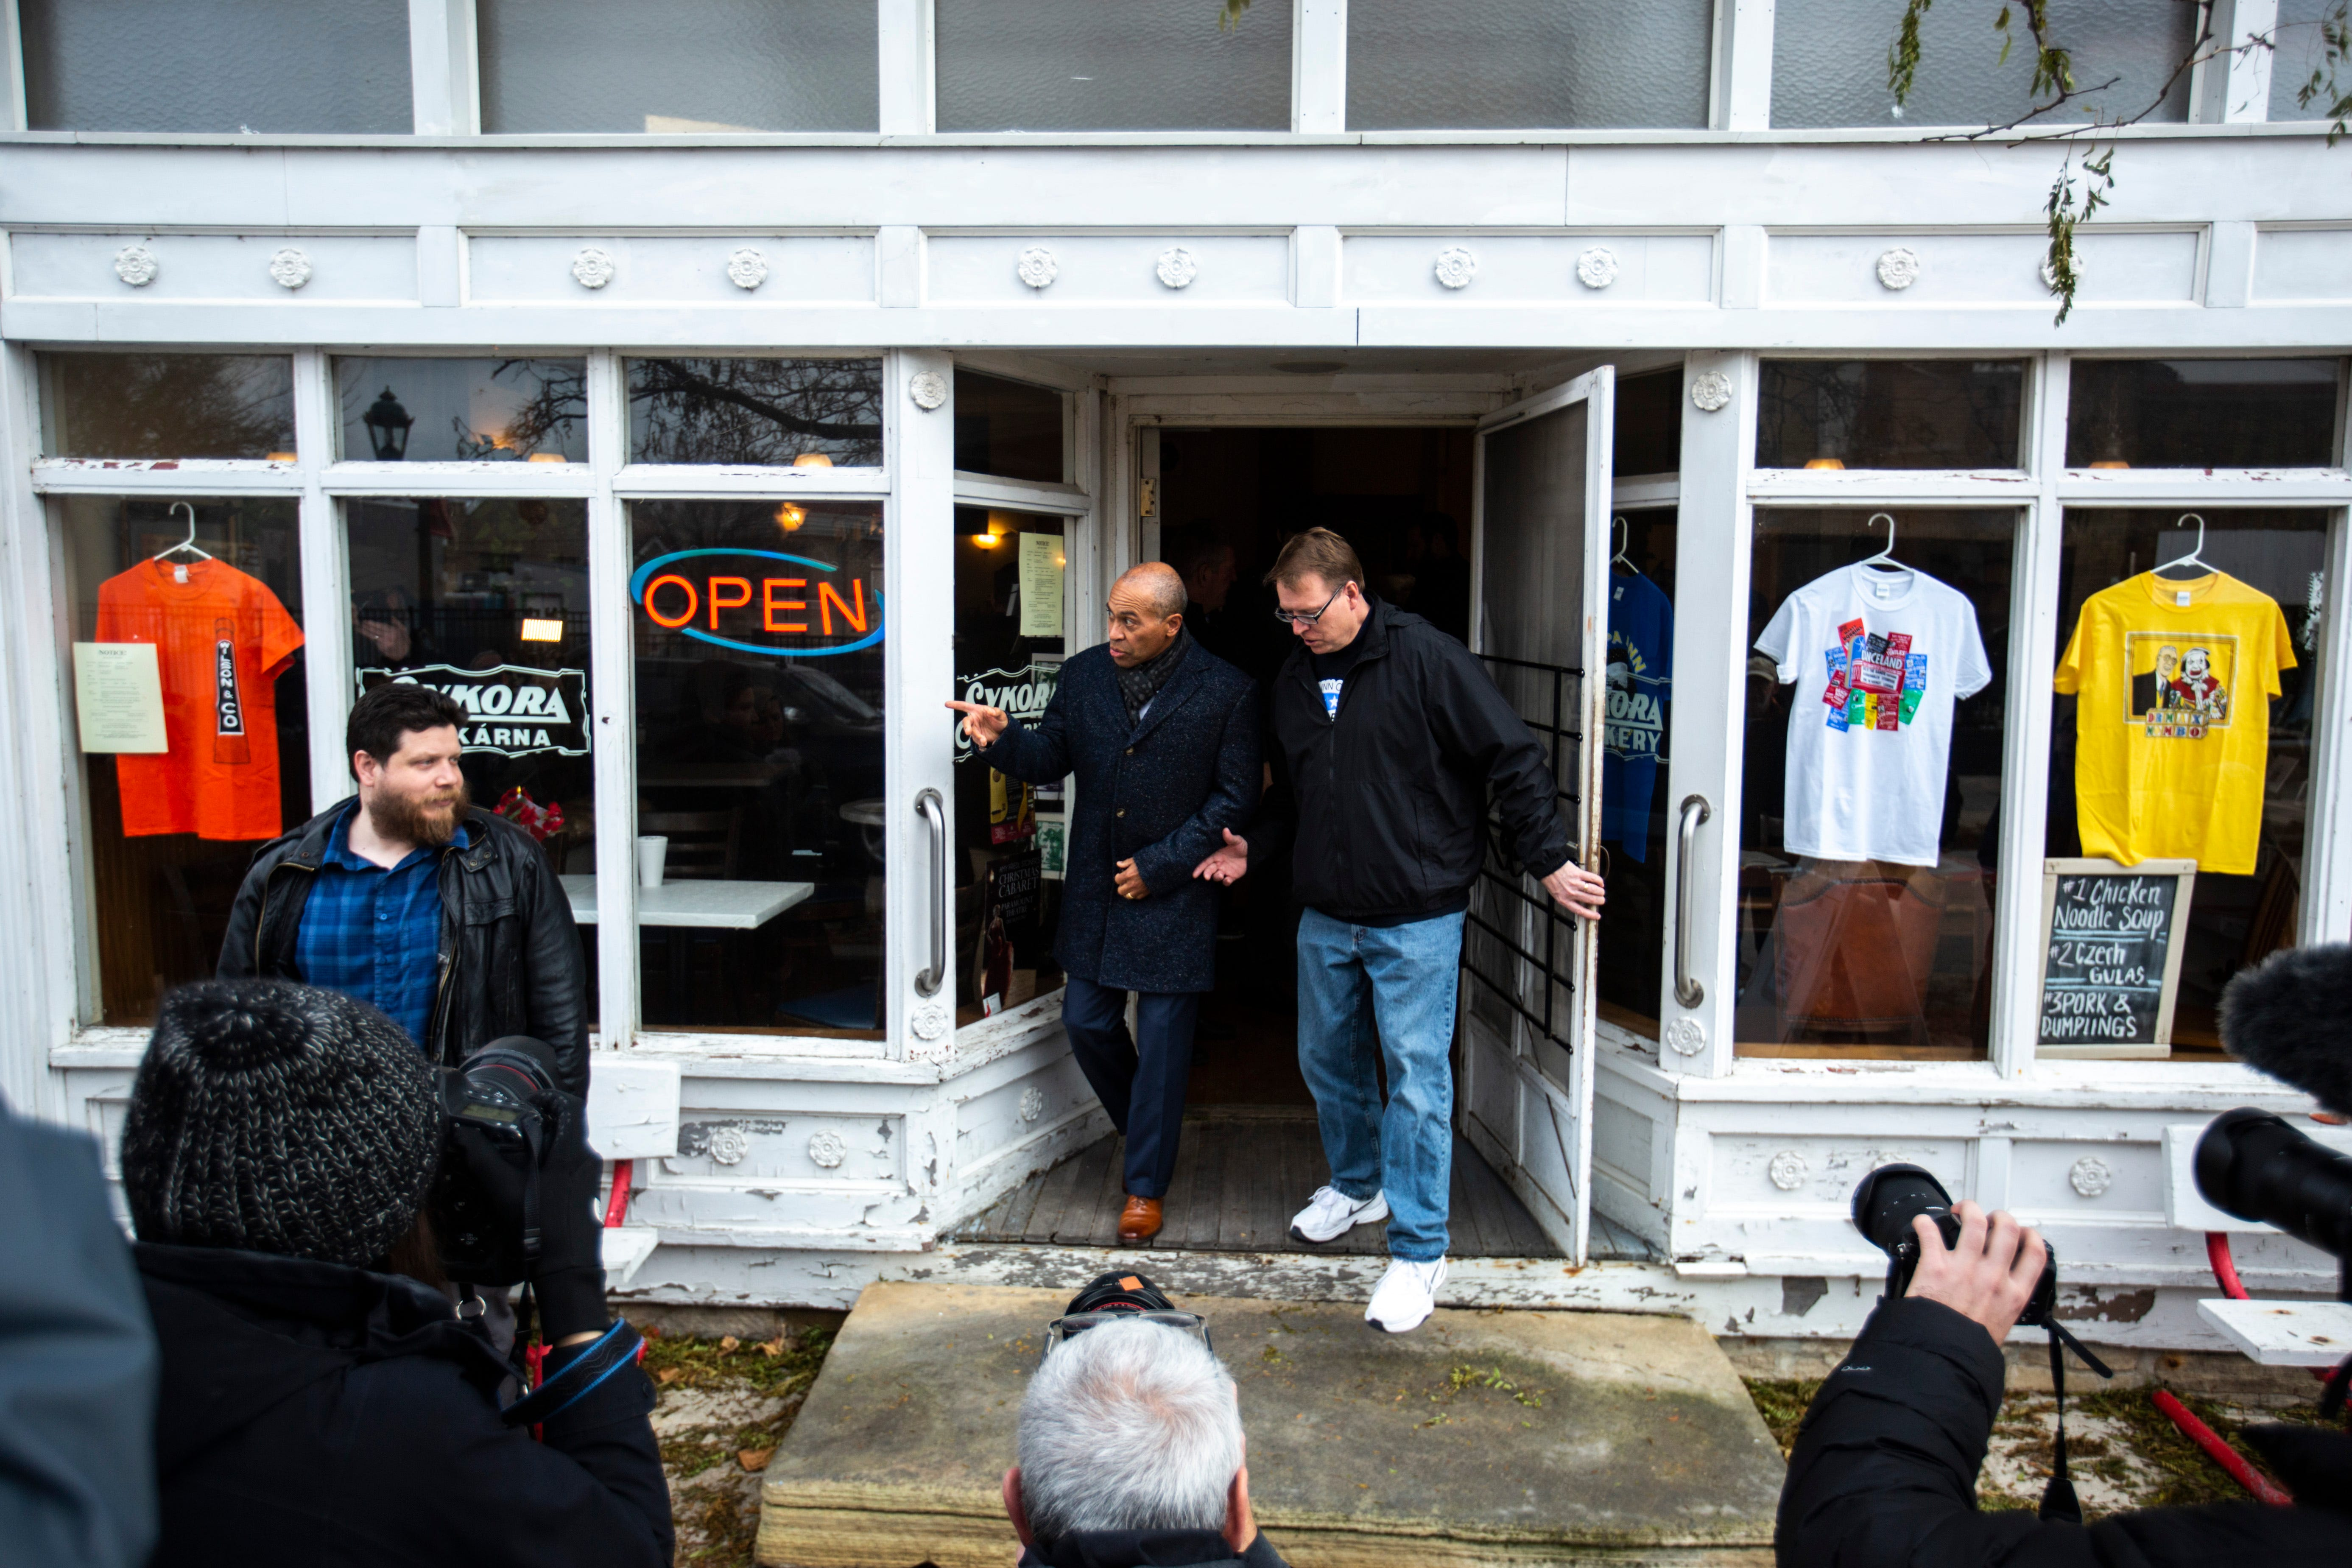 Photos: Presidential candidate Deval Patrick makes first stop of candidacy in Iowa